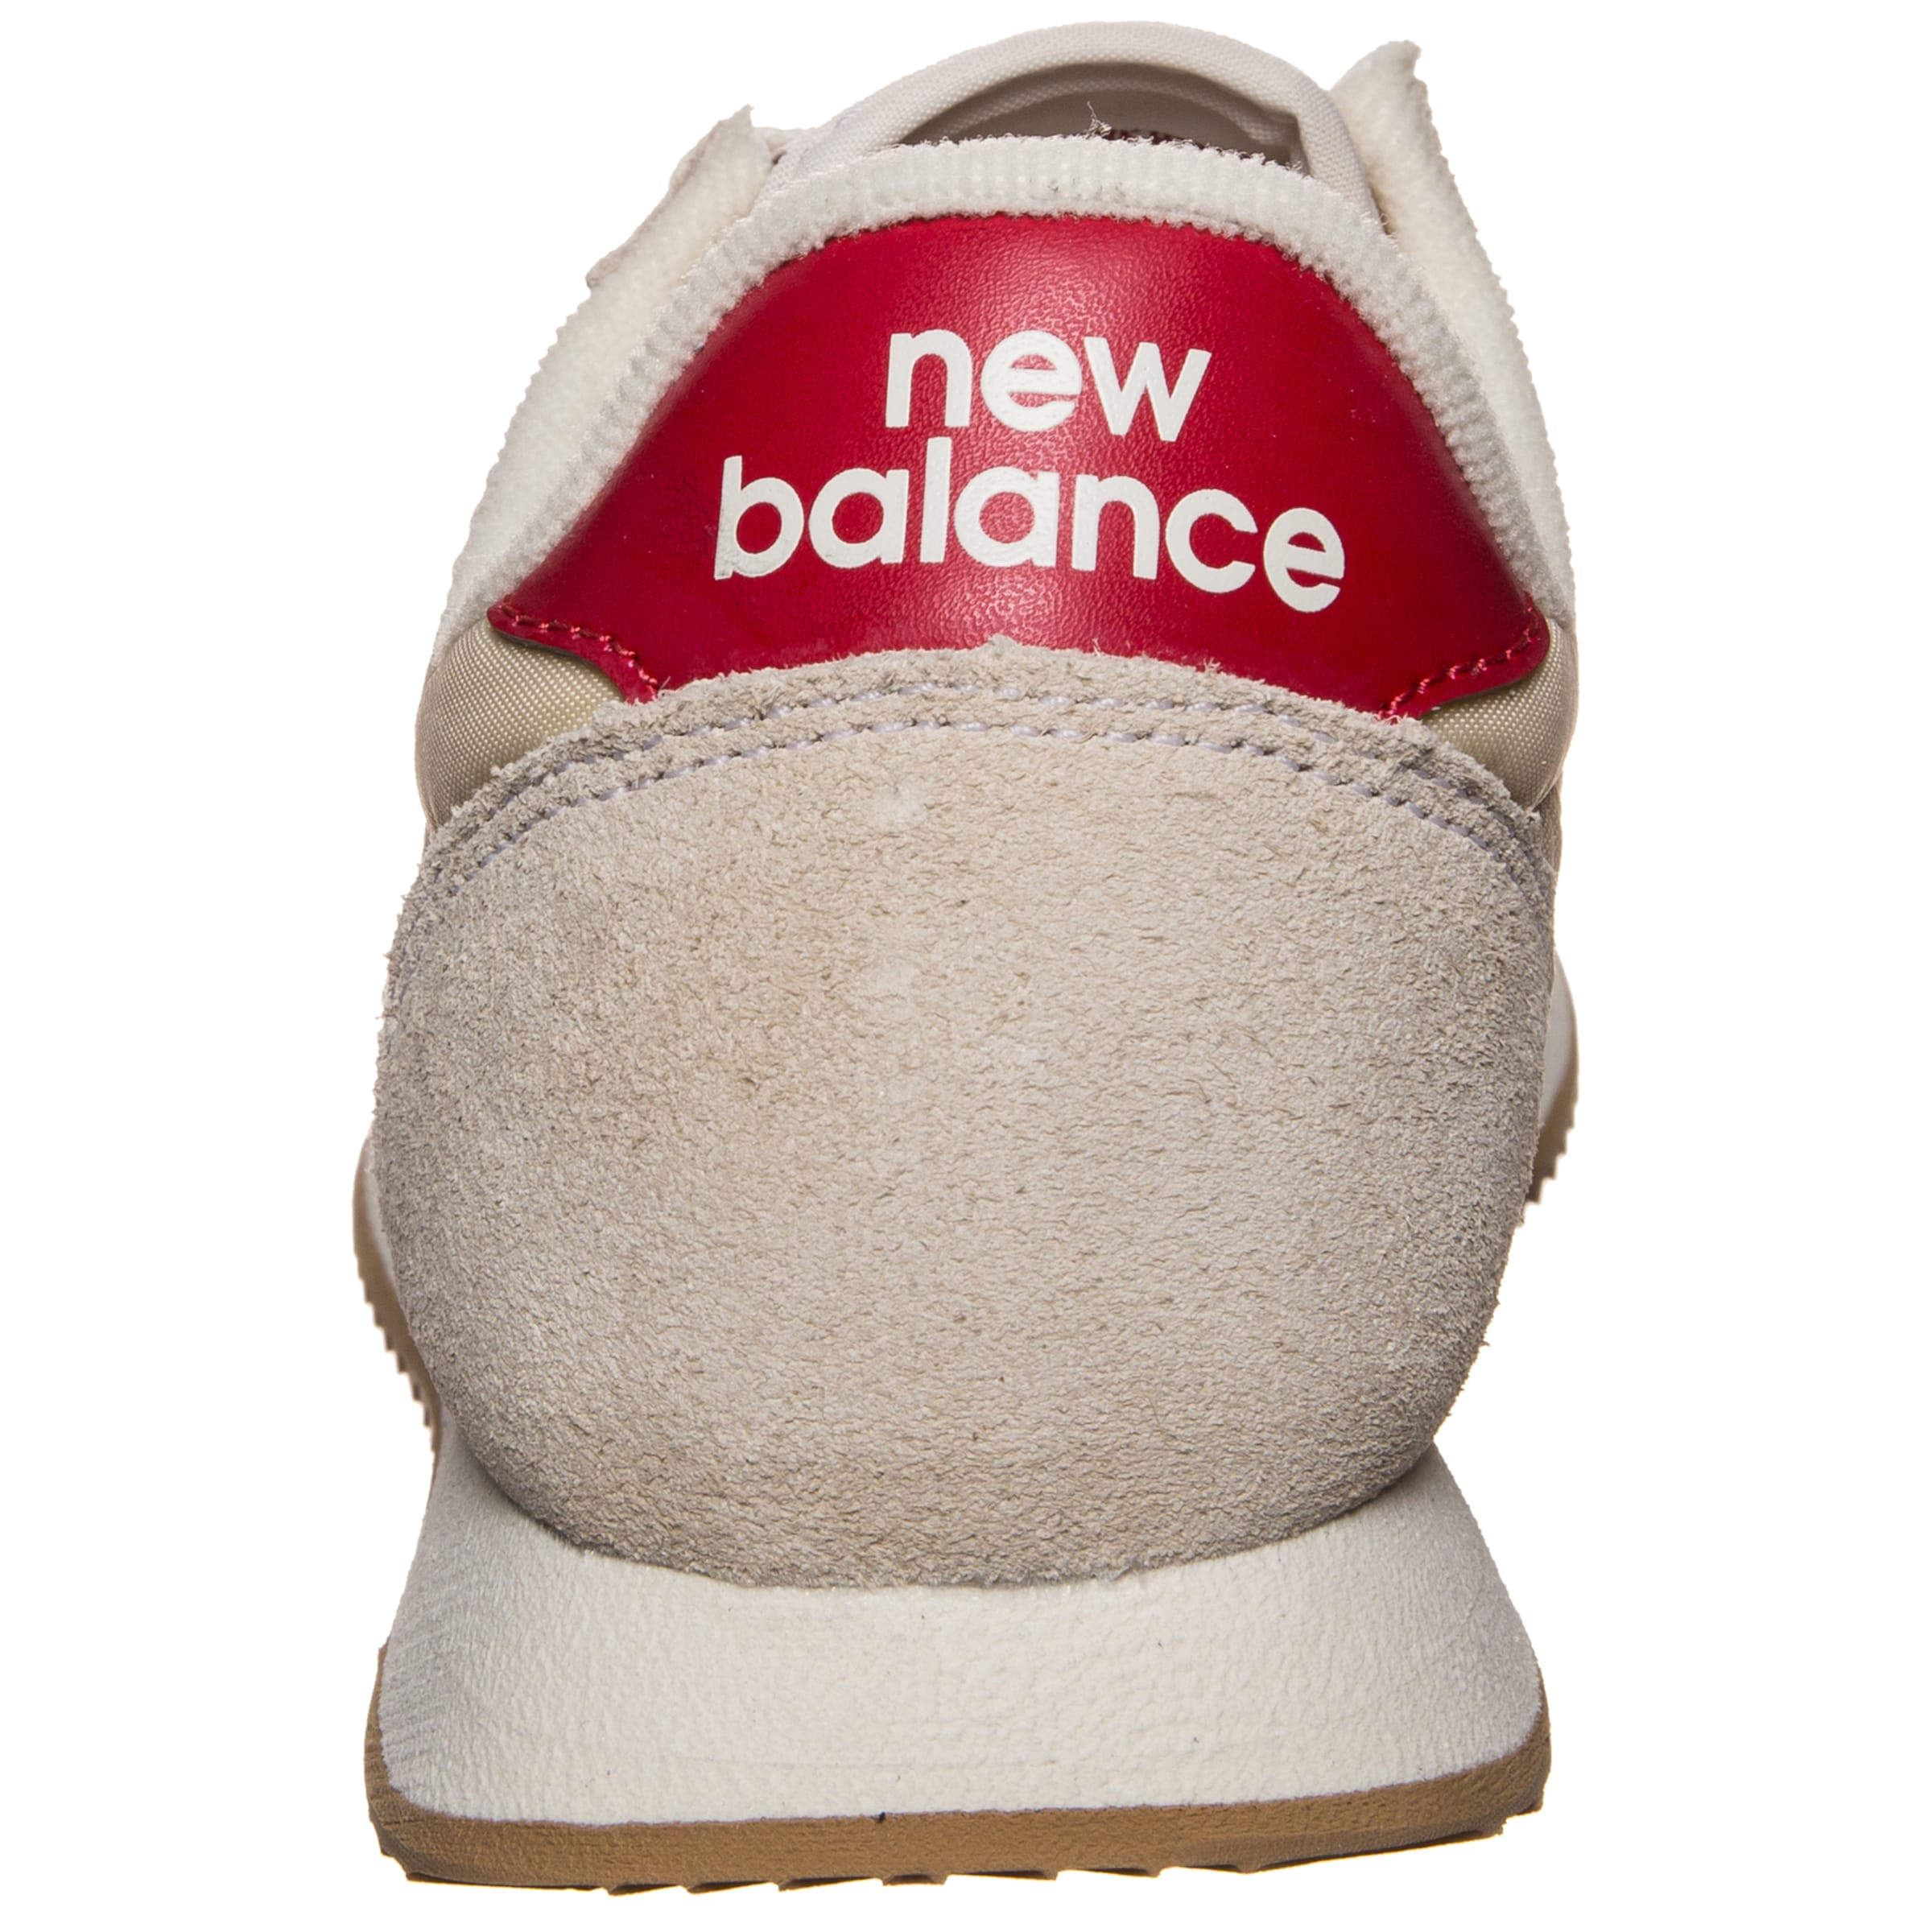 New ChampagneRouge Basses d' Foncé Balance bg Baskets En 'wl220 Yy6bf7g